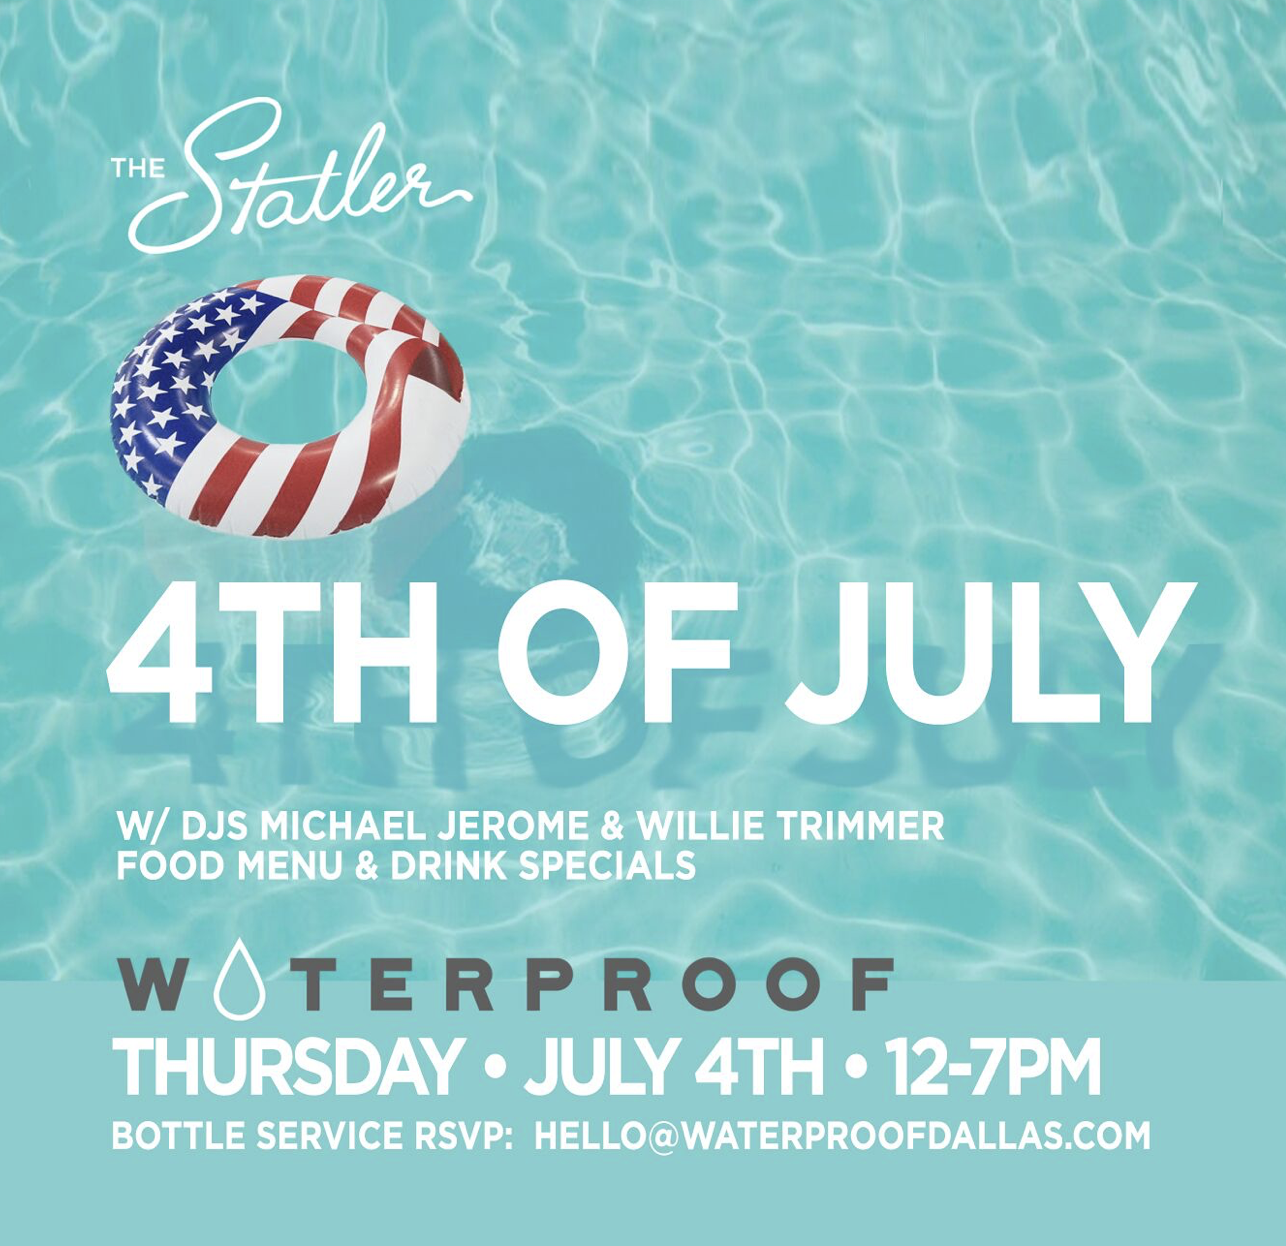 Join the Statler for the 4th of July at Waterproof!   With DJs, a food menu and drink specials   Email hello@waterproofdallas.com - Free with RSVP   website